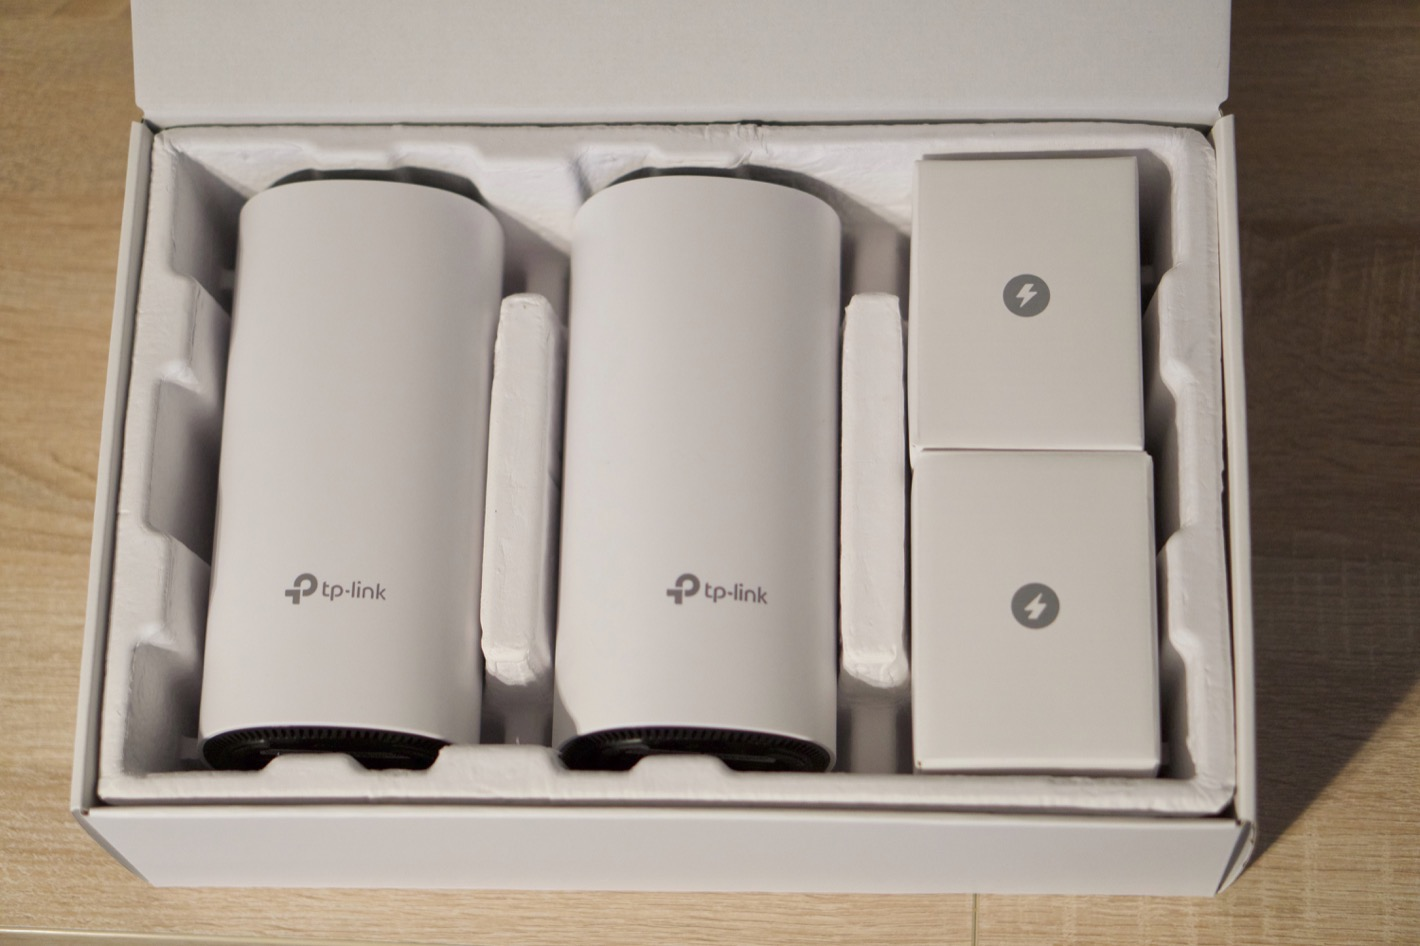 ant_tp-link_deco_02